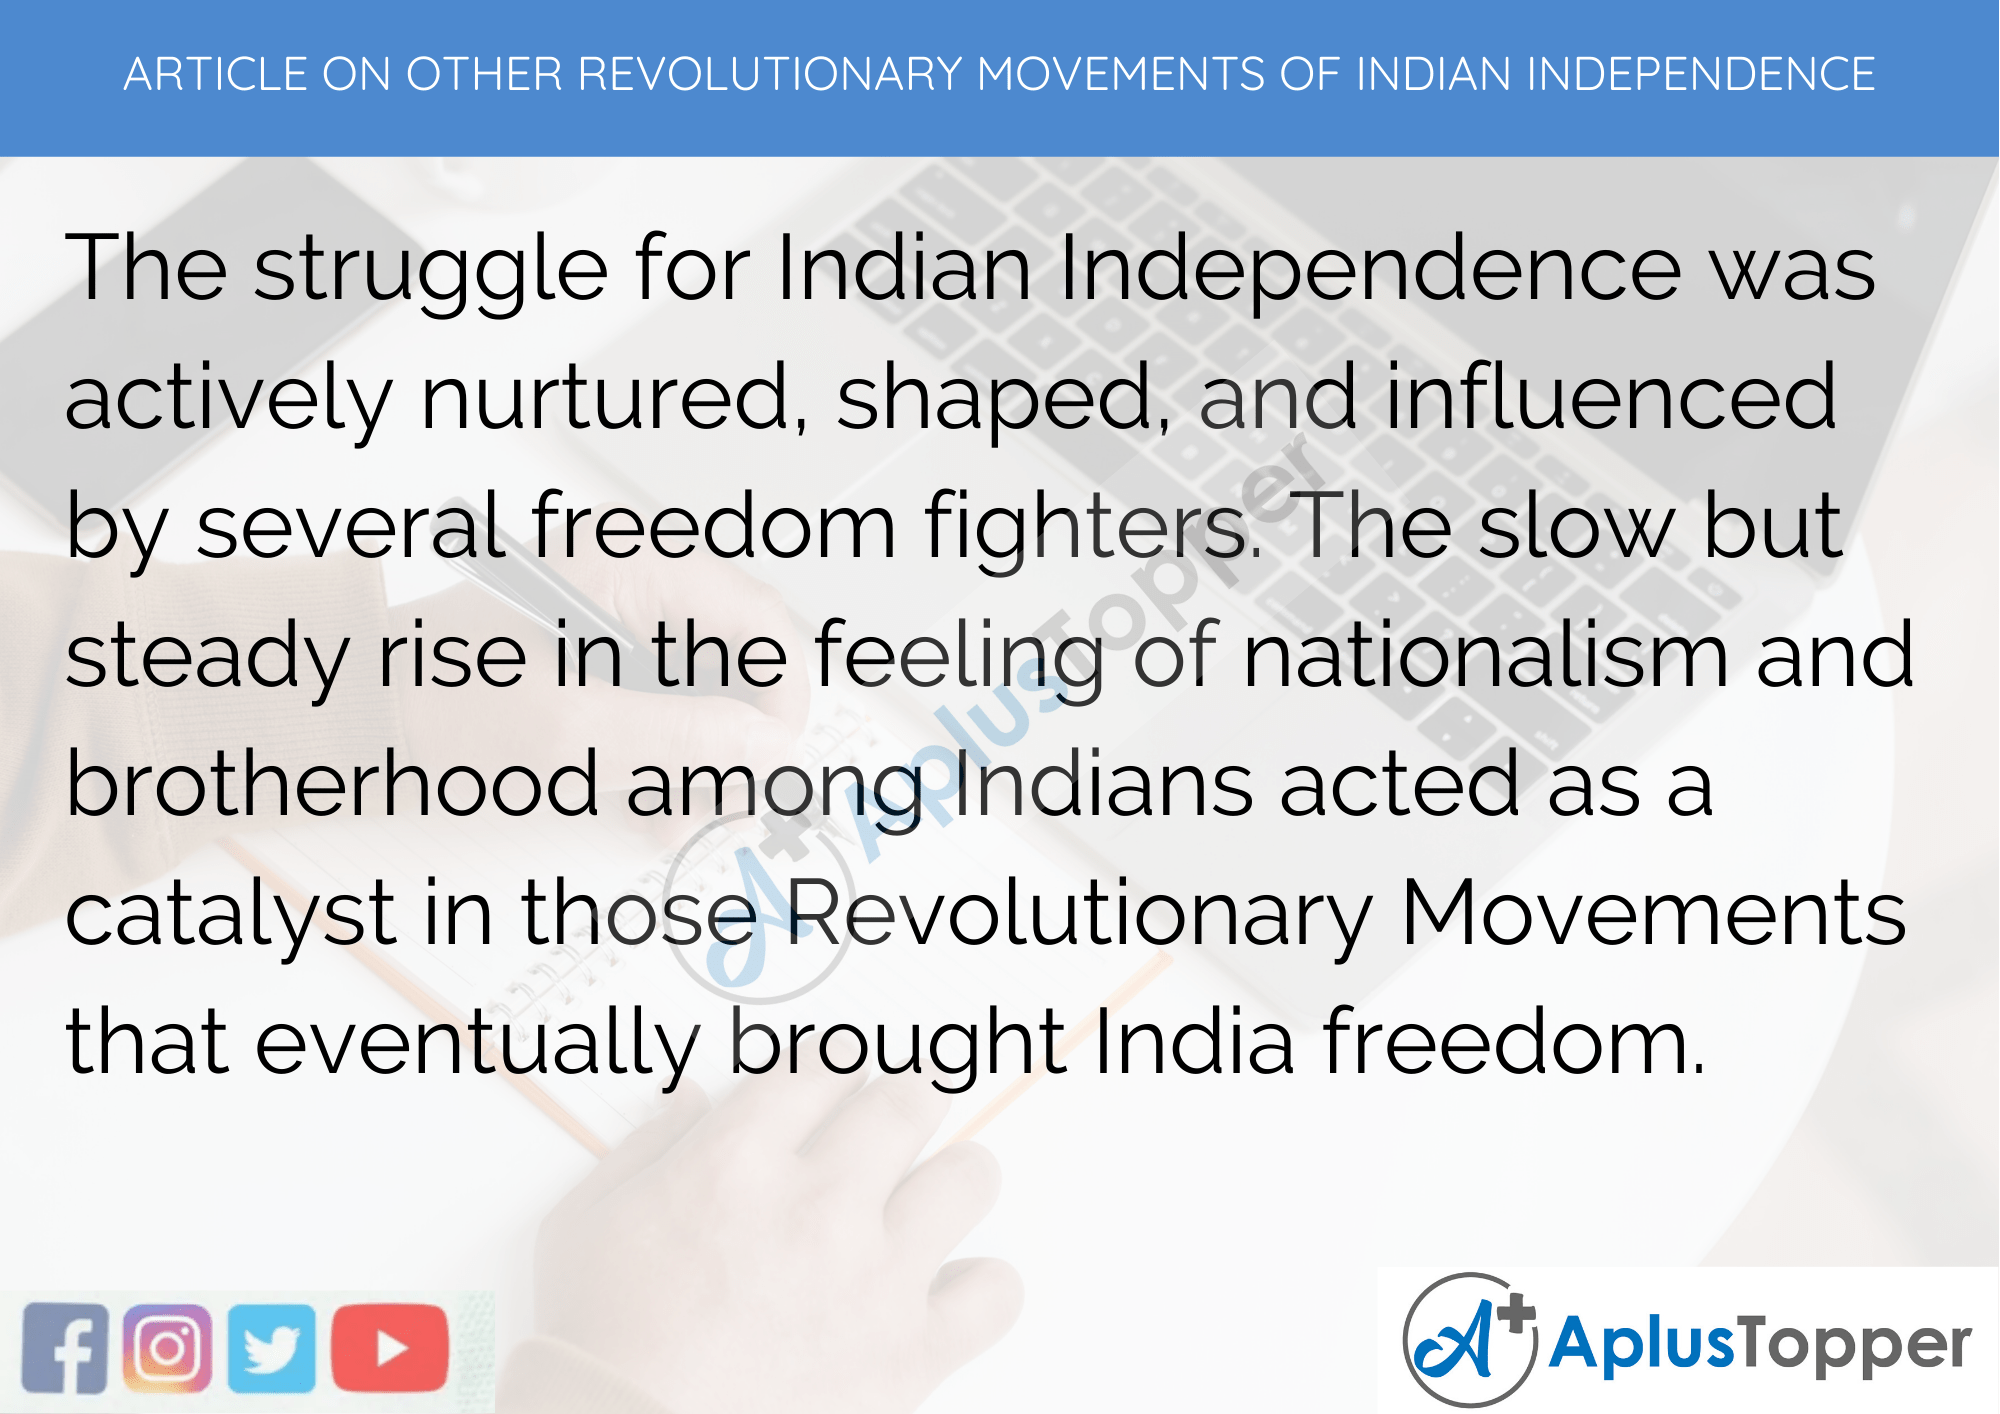 Short Article On Other Revolutionary Movements Of Indian Independence 300 Words in English